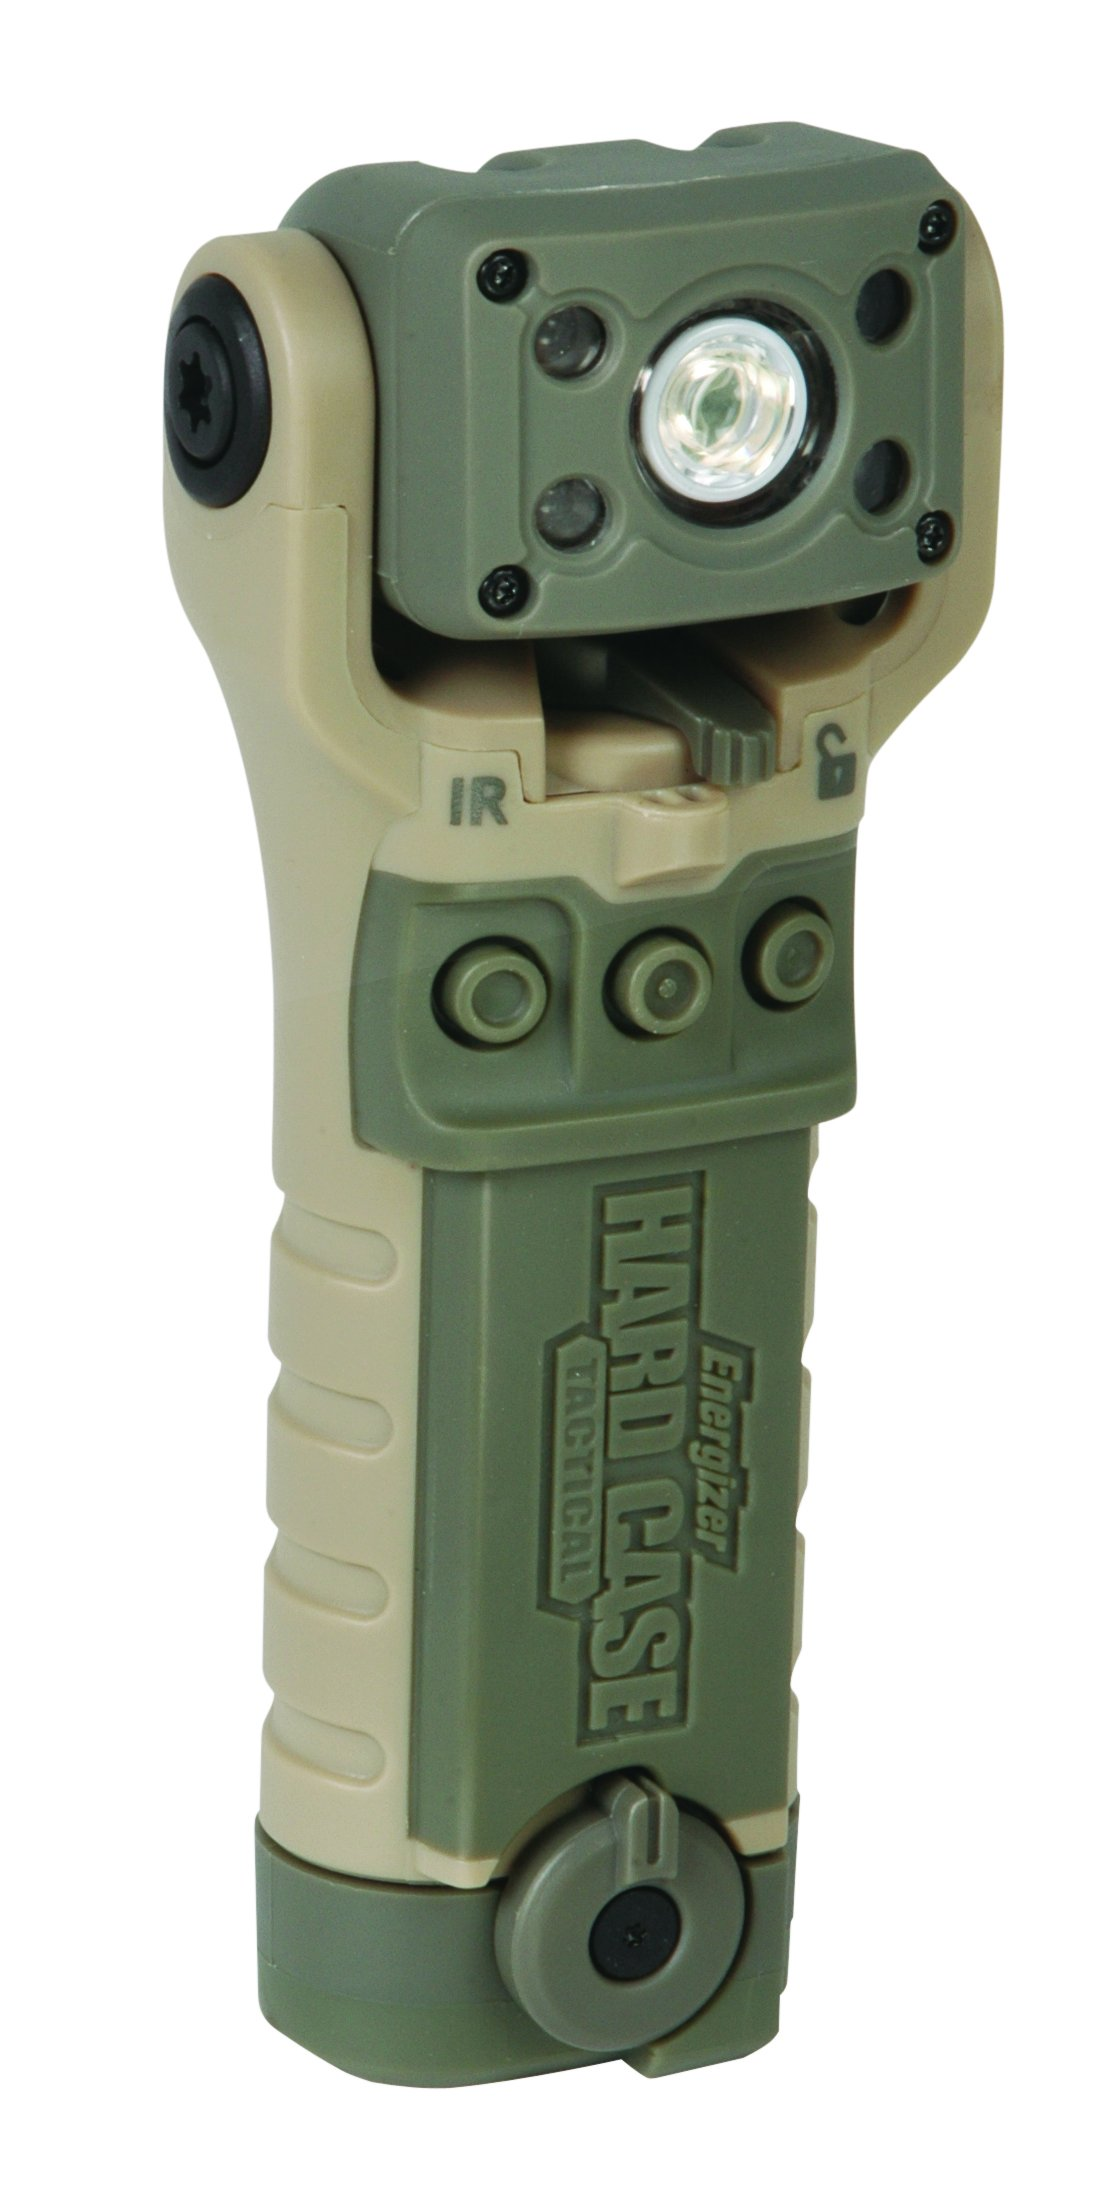 Energizer HardCase Tactical Bravo 2AA LED Swivel Flashlight by Energizer HardCase Tactical (Image #1)